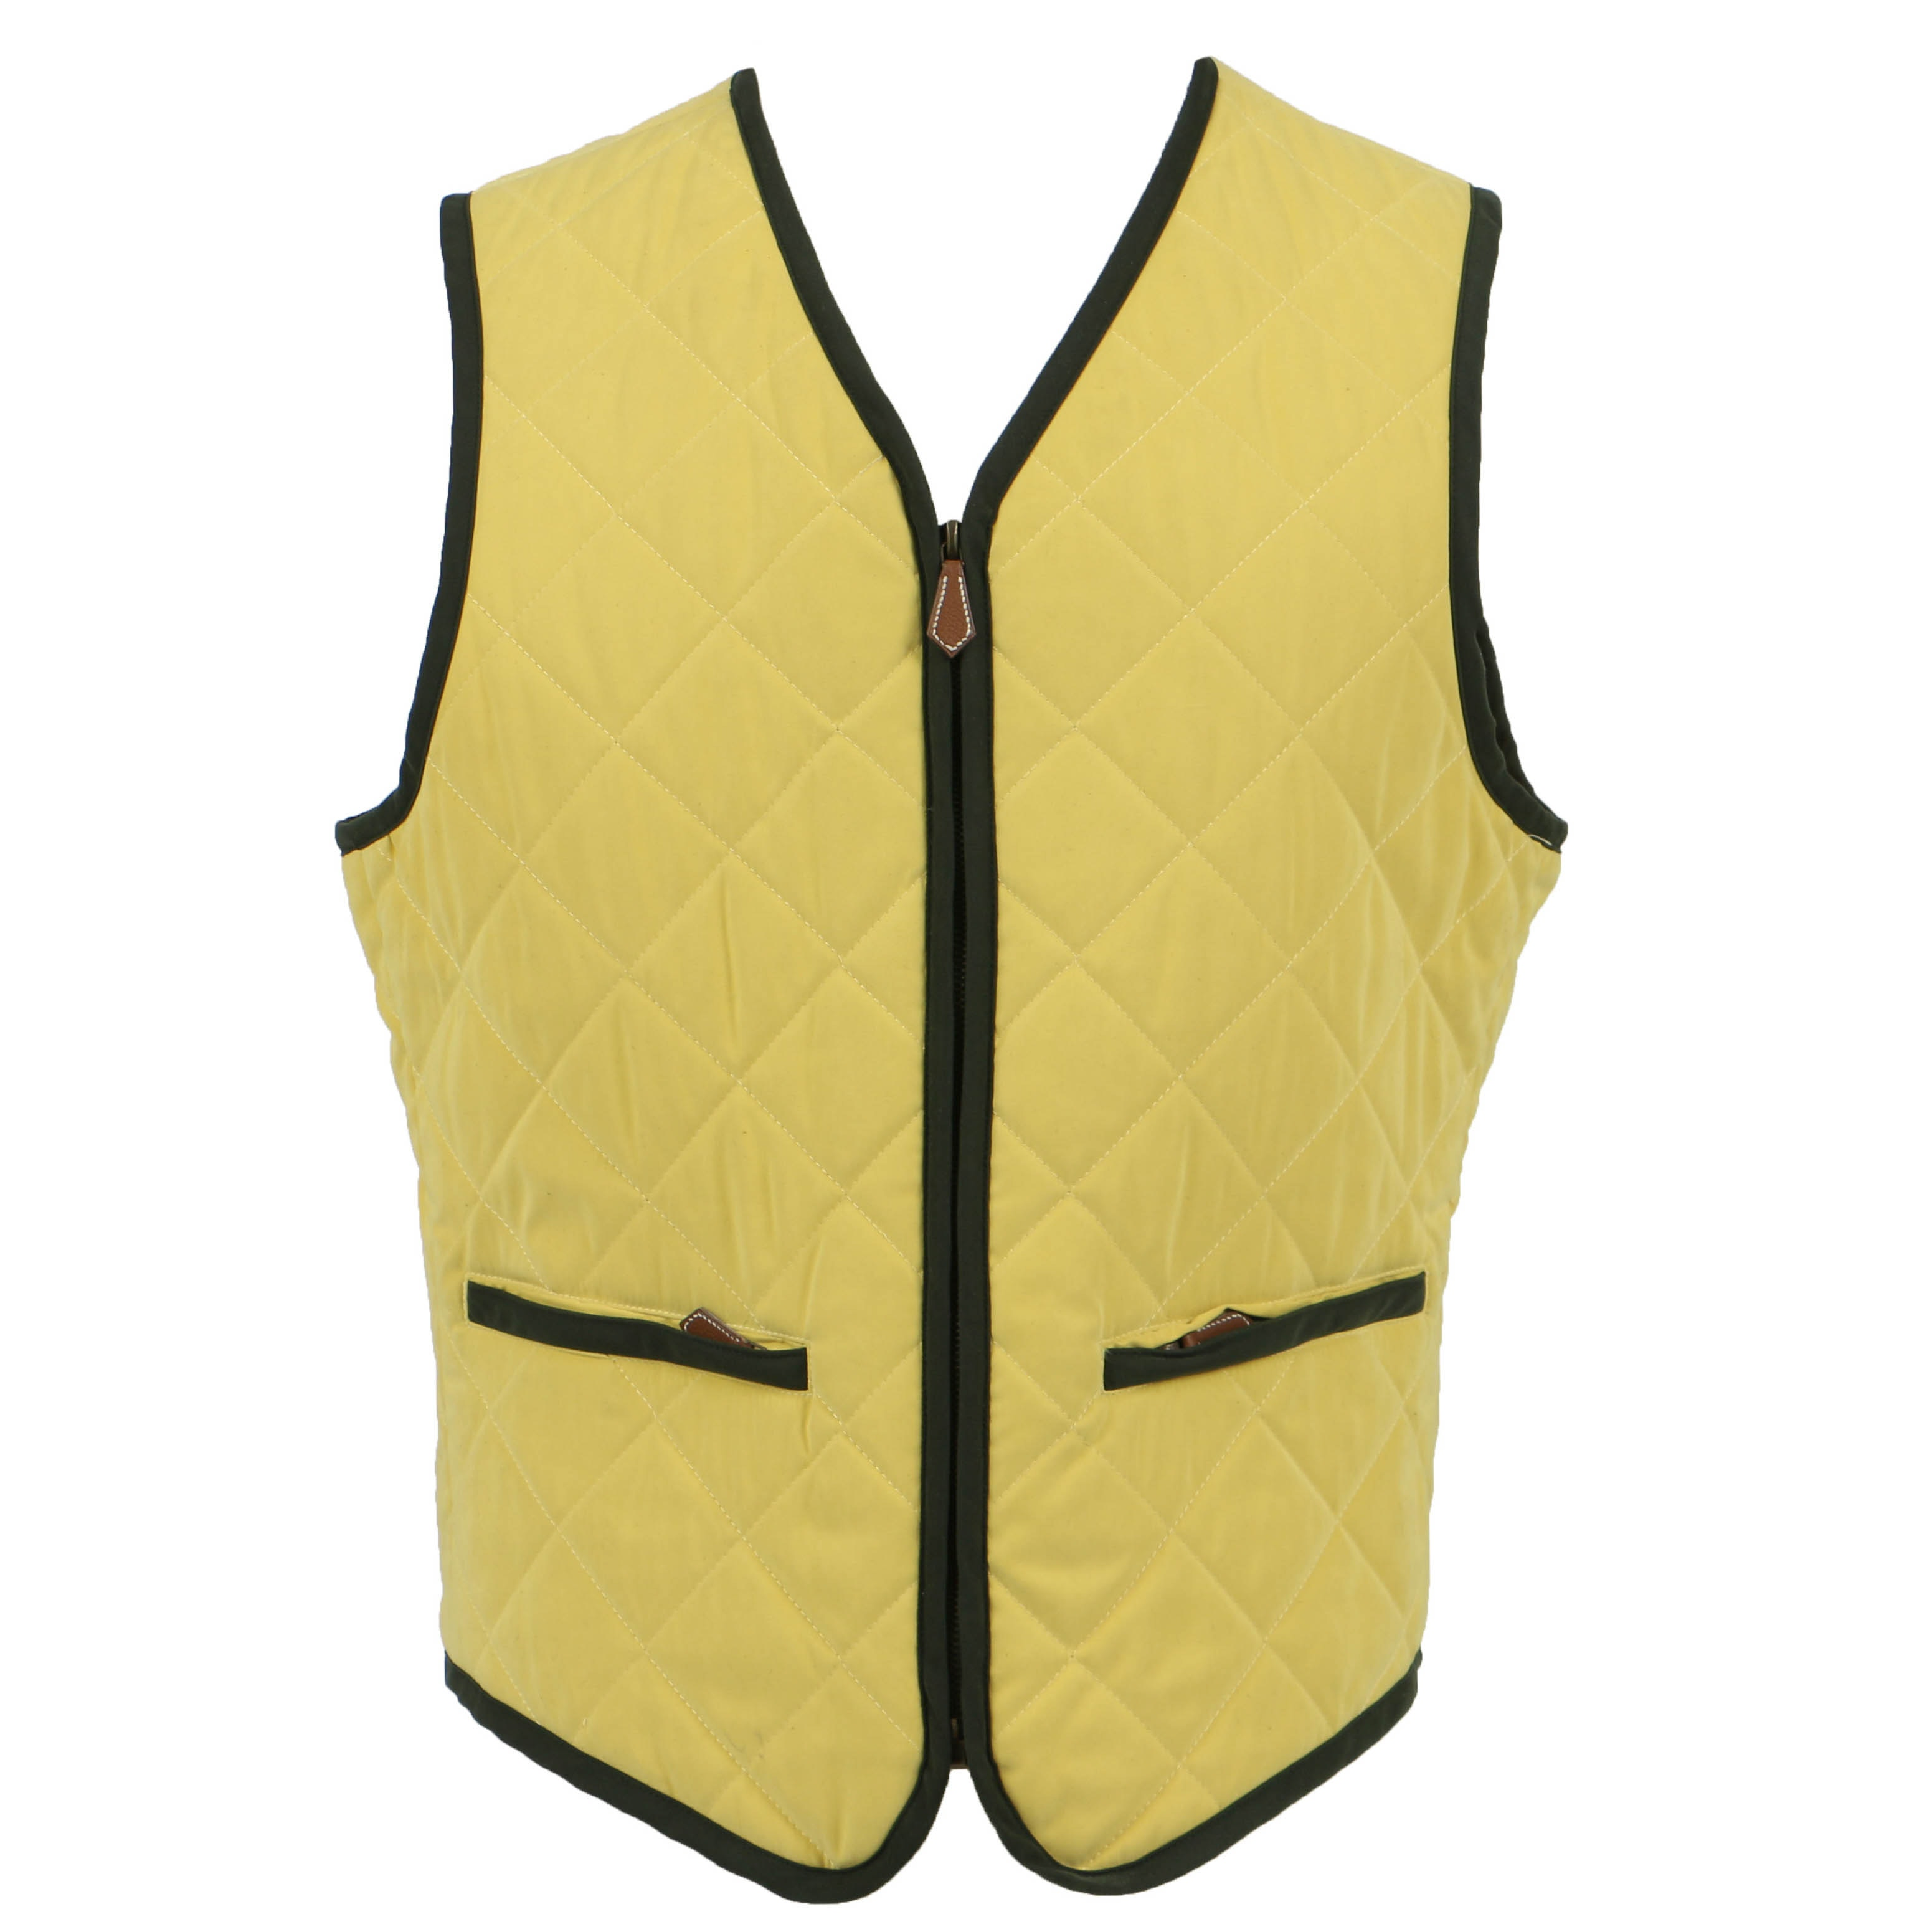 Hermès Vintage Quilted Yellow Waistcoat